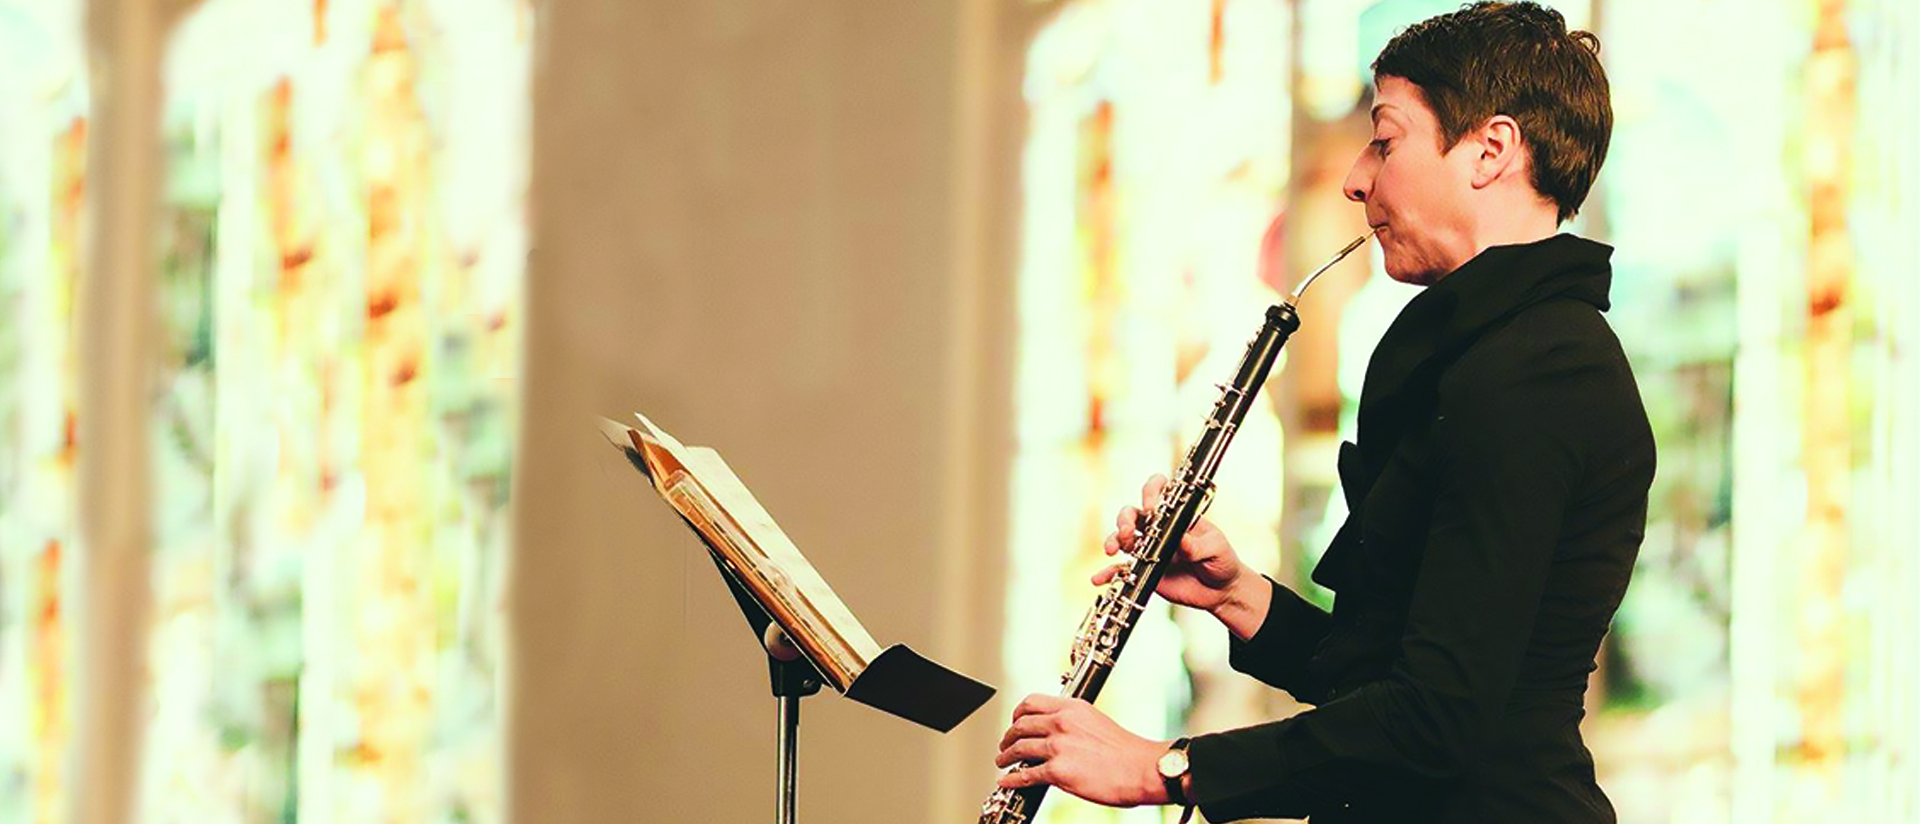 Dr. Christa Garvey, professor of music at UW-Eau Claire, is principal oboist with the Eau Claire Chamber Orchestra.